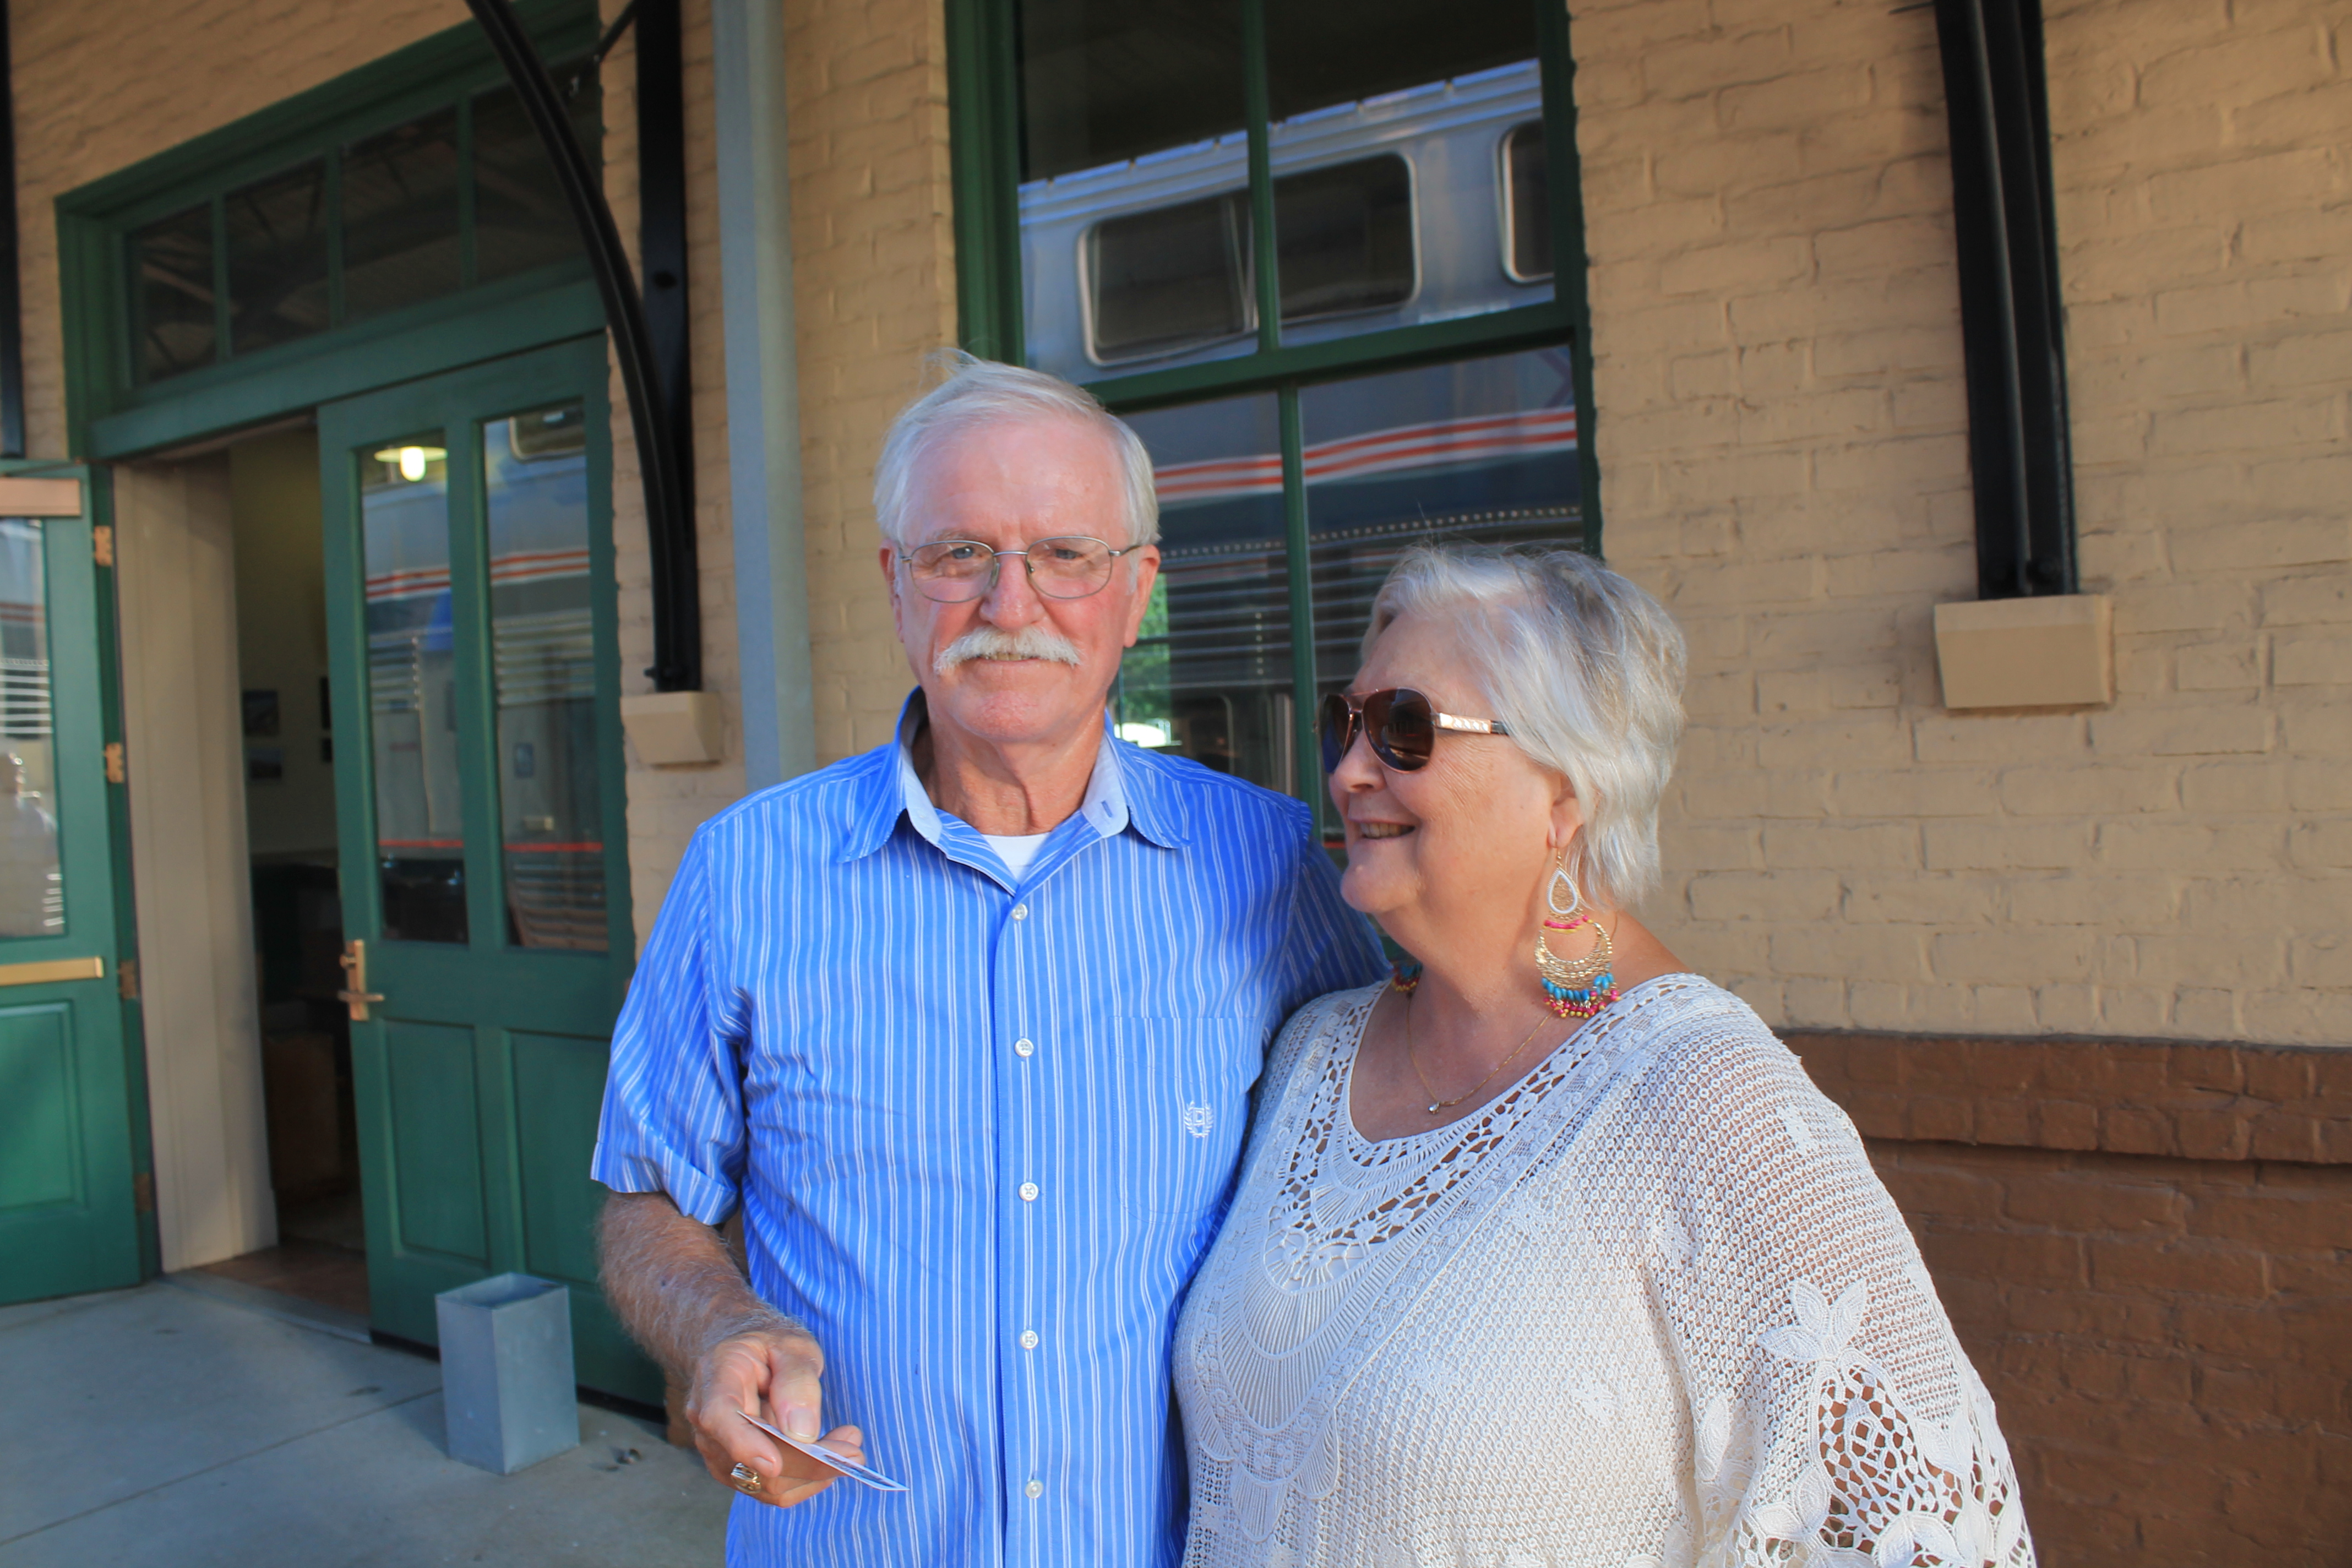 Doug and Carolyn Franklin at the Amtrak Depot in Mineola,TX.